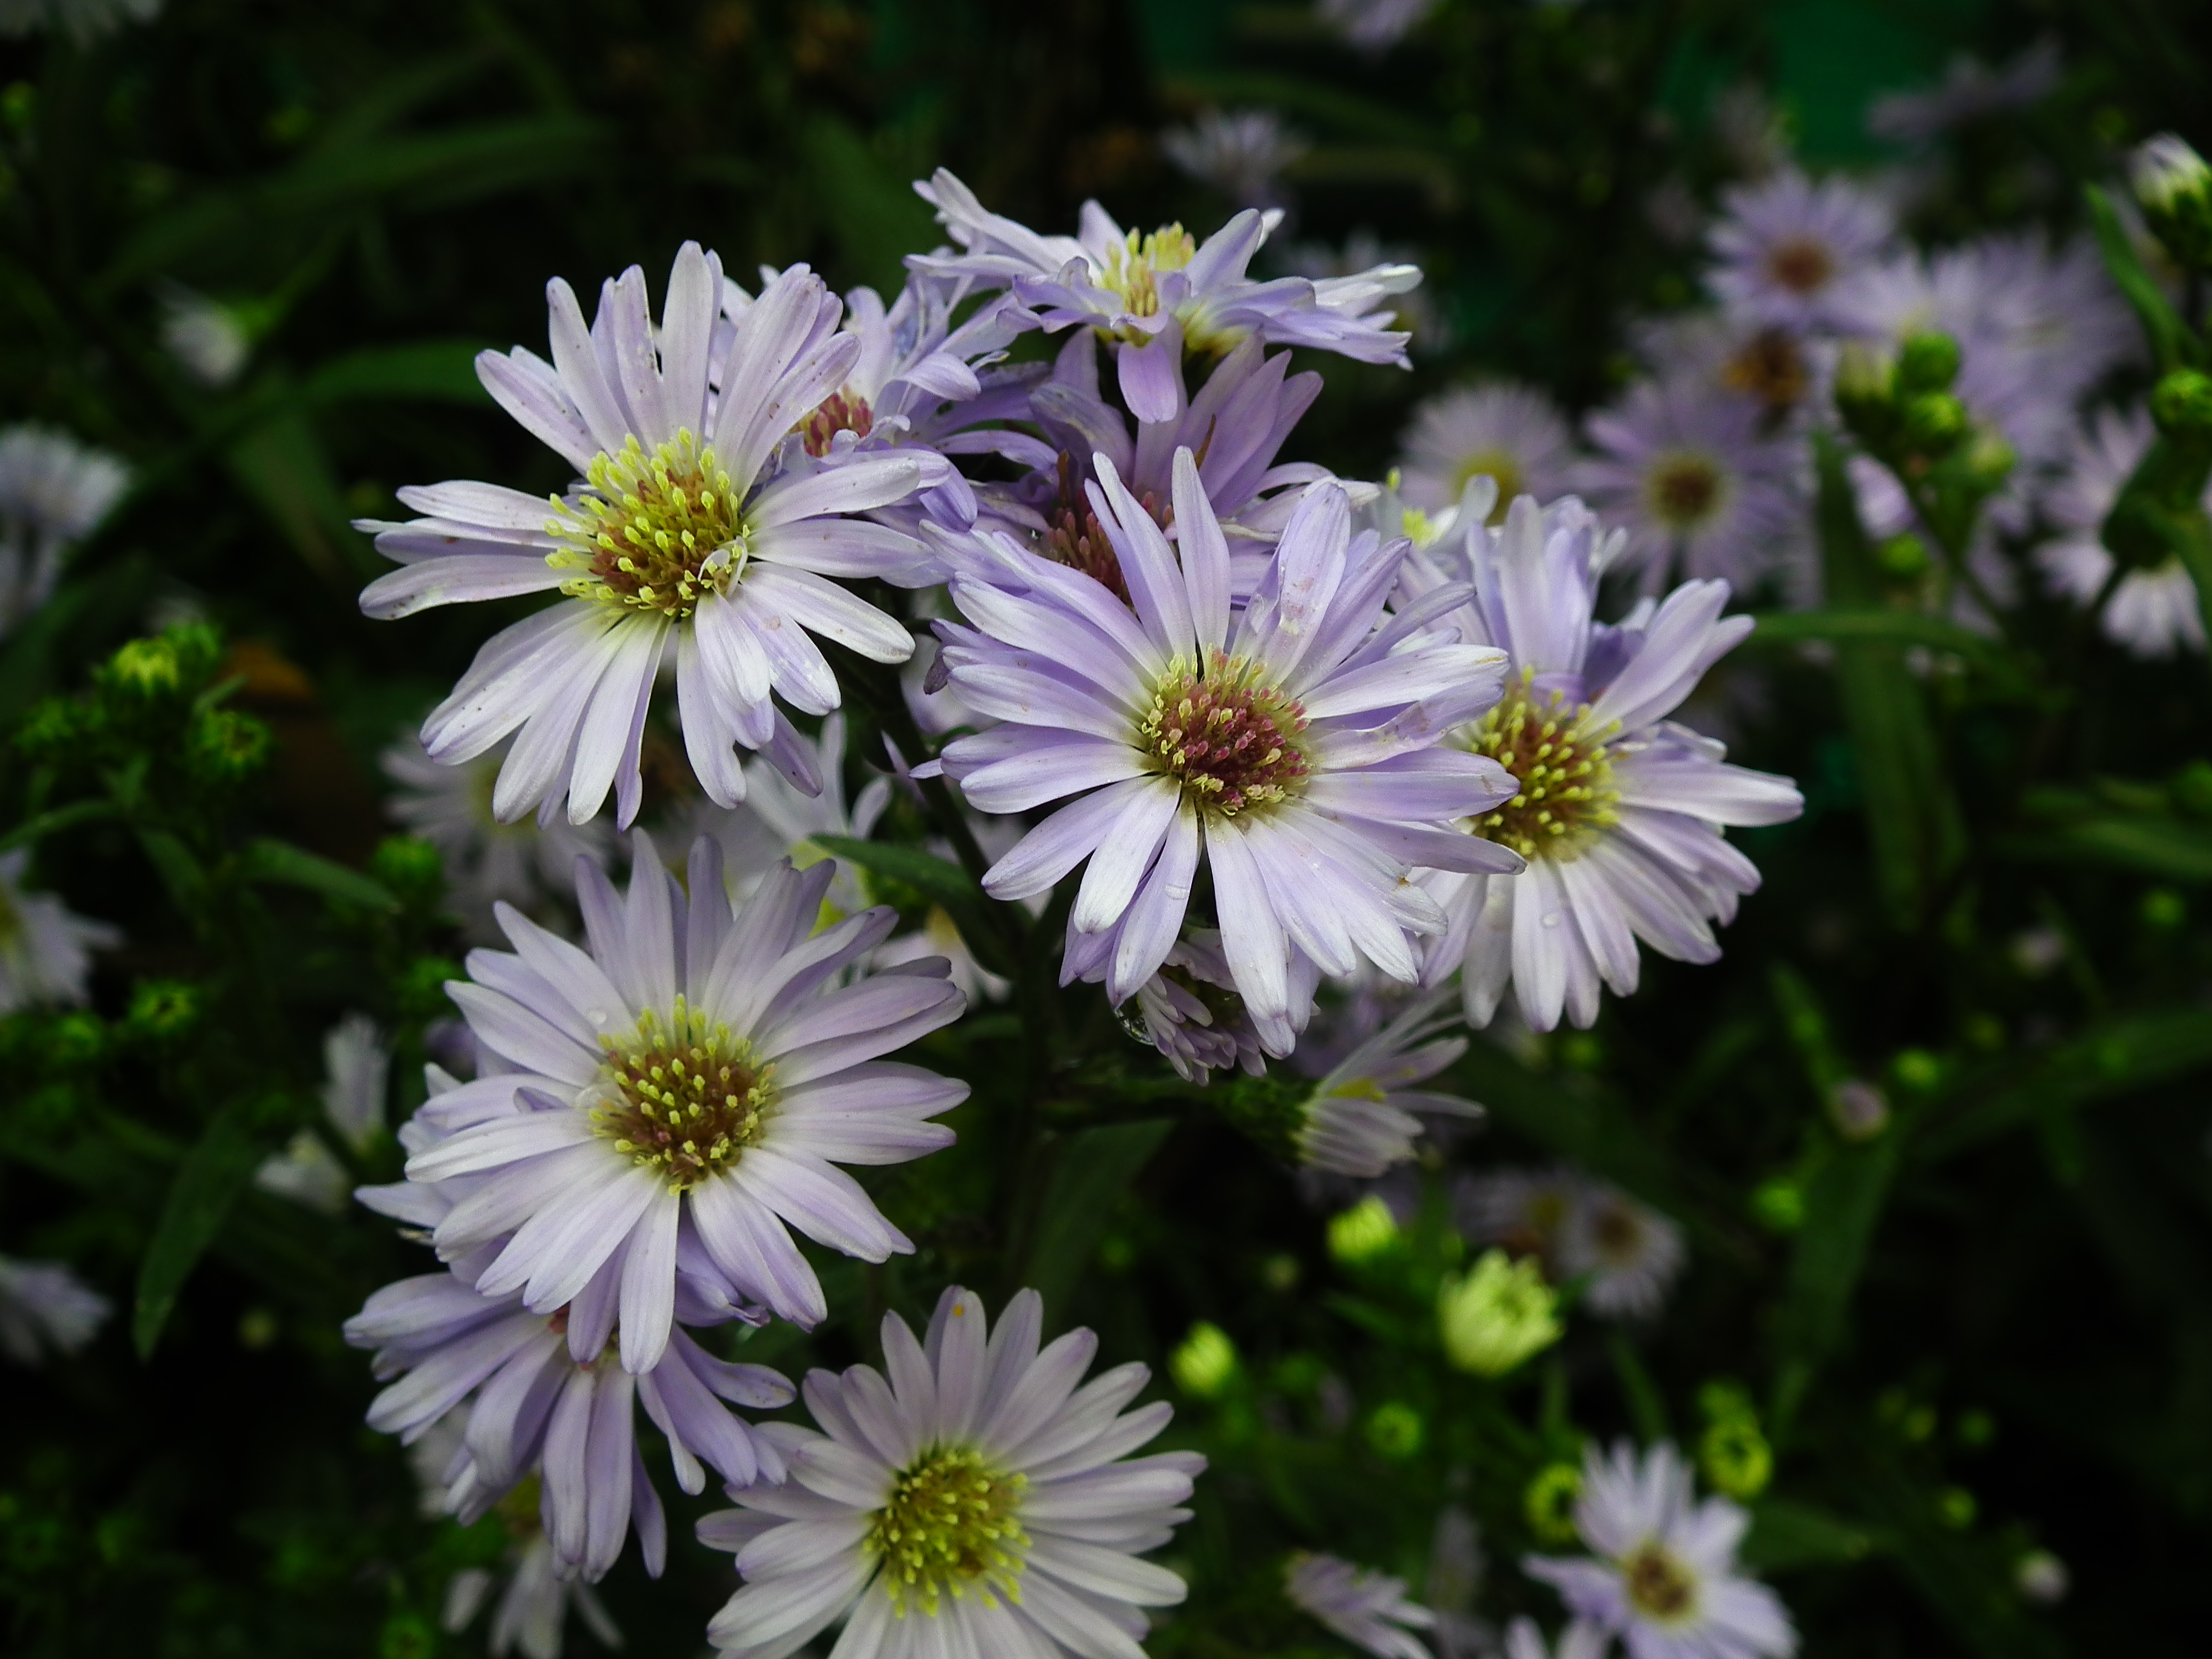 File:Michaelmas daisy or Aster amellus from Lalbagh